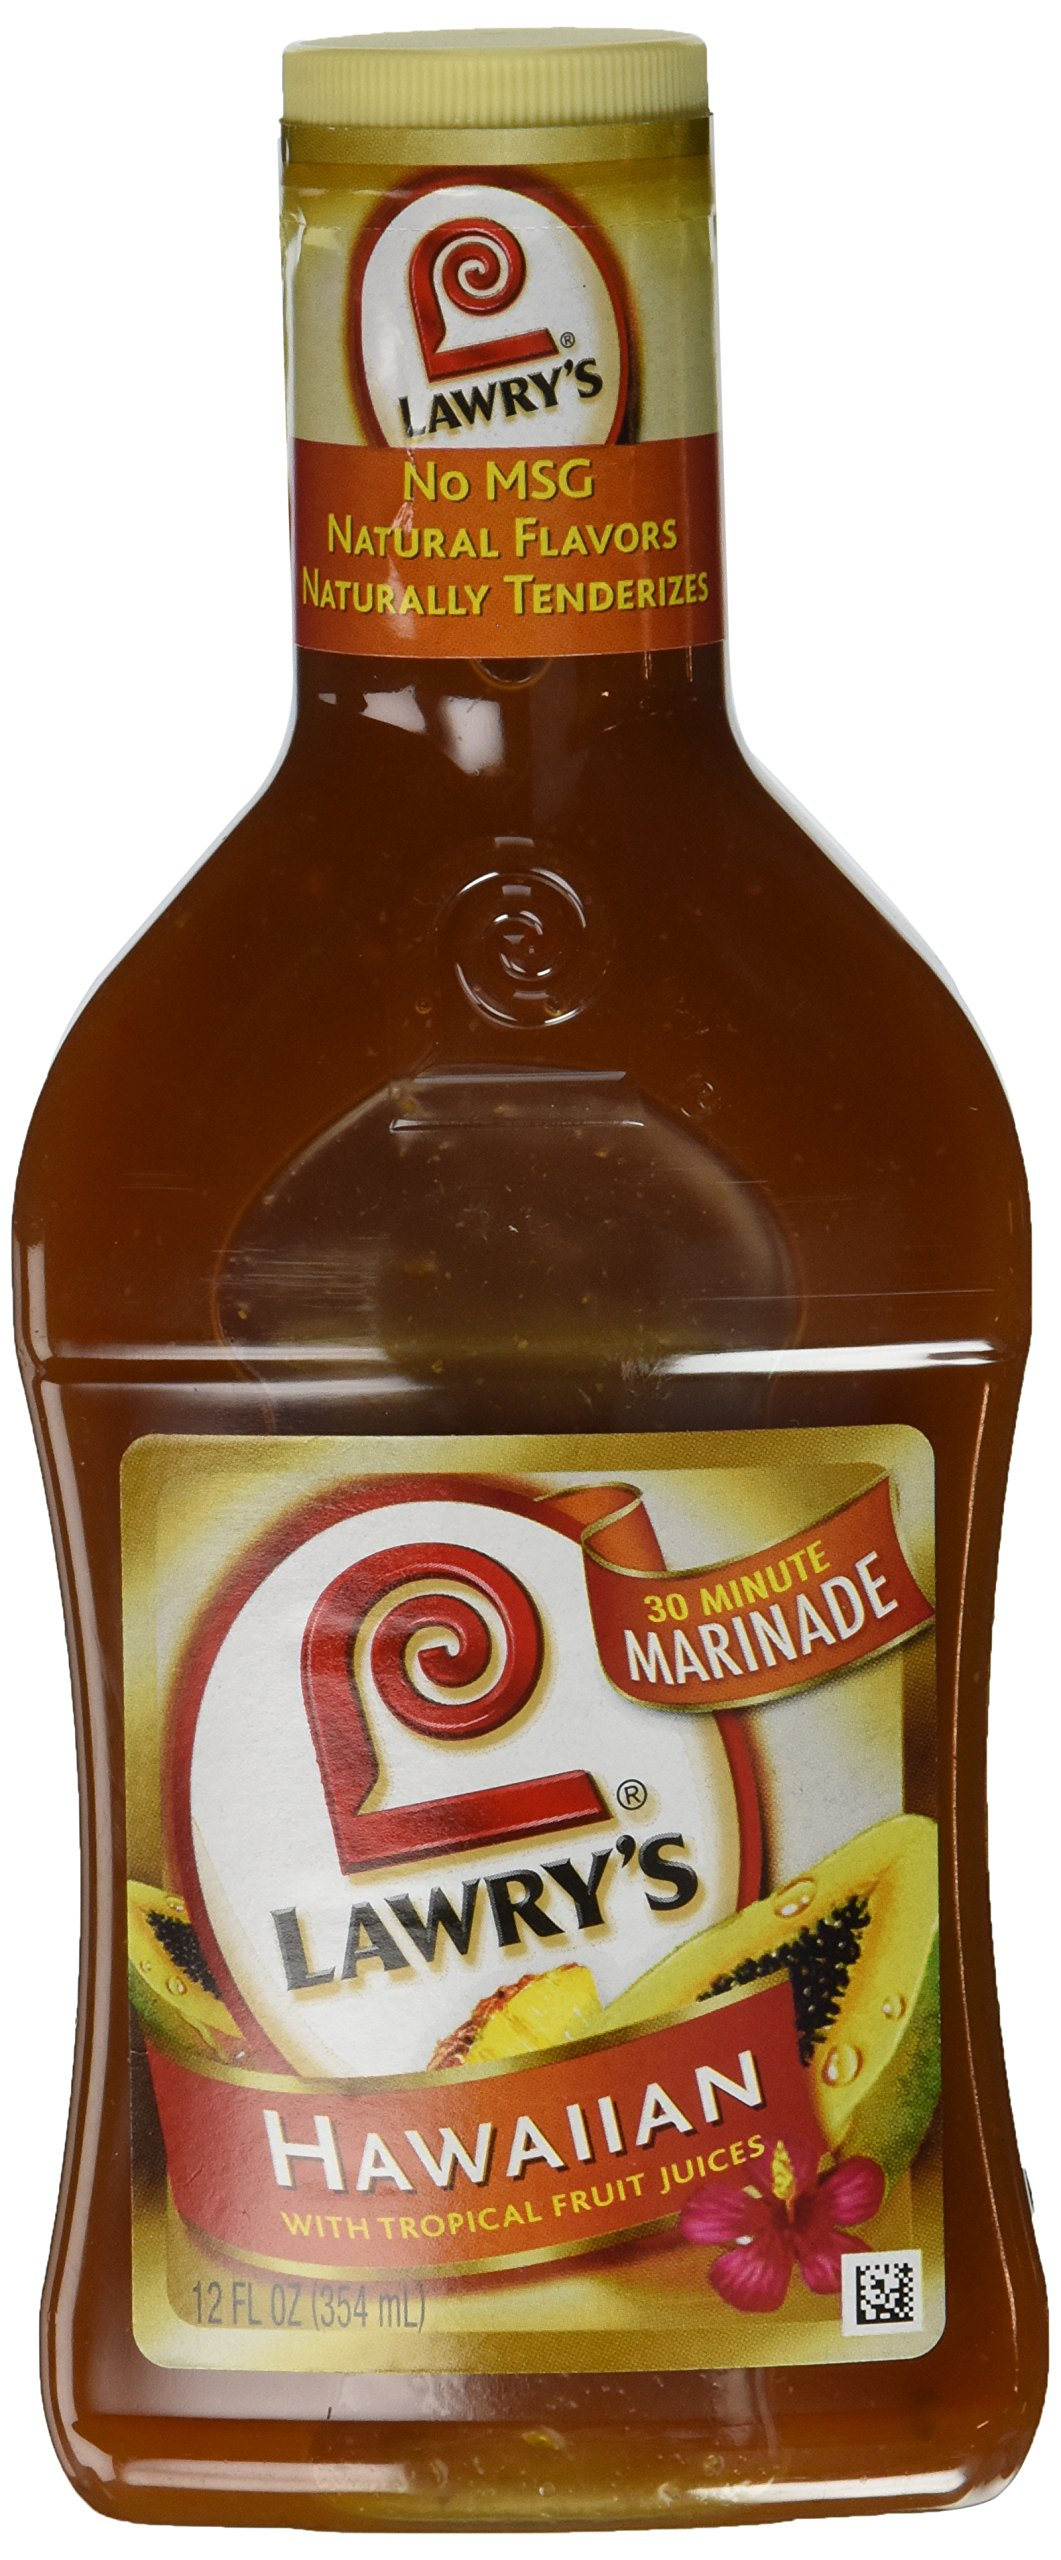 Lawry's, Hawaiian with Tropical Fruit Juices Marinade, 12oz Bottle (Pack of 3)